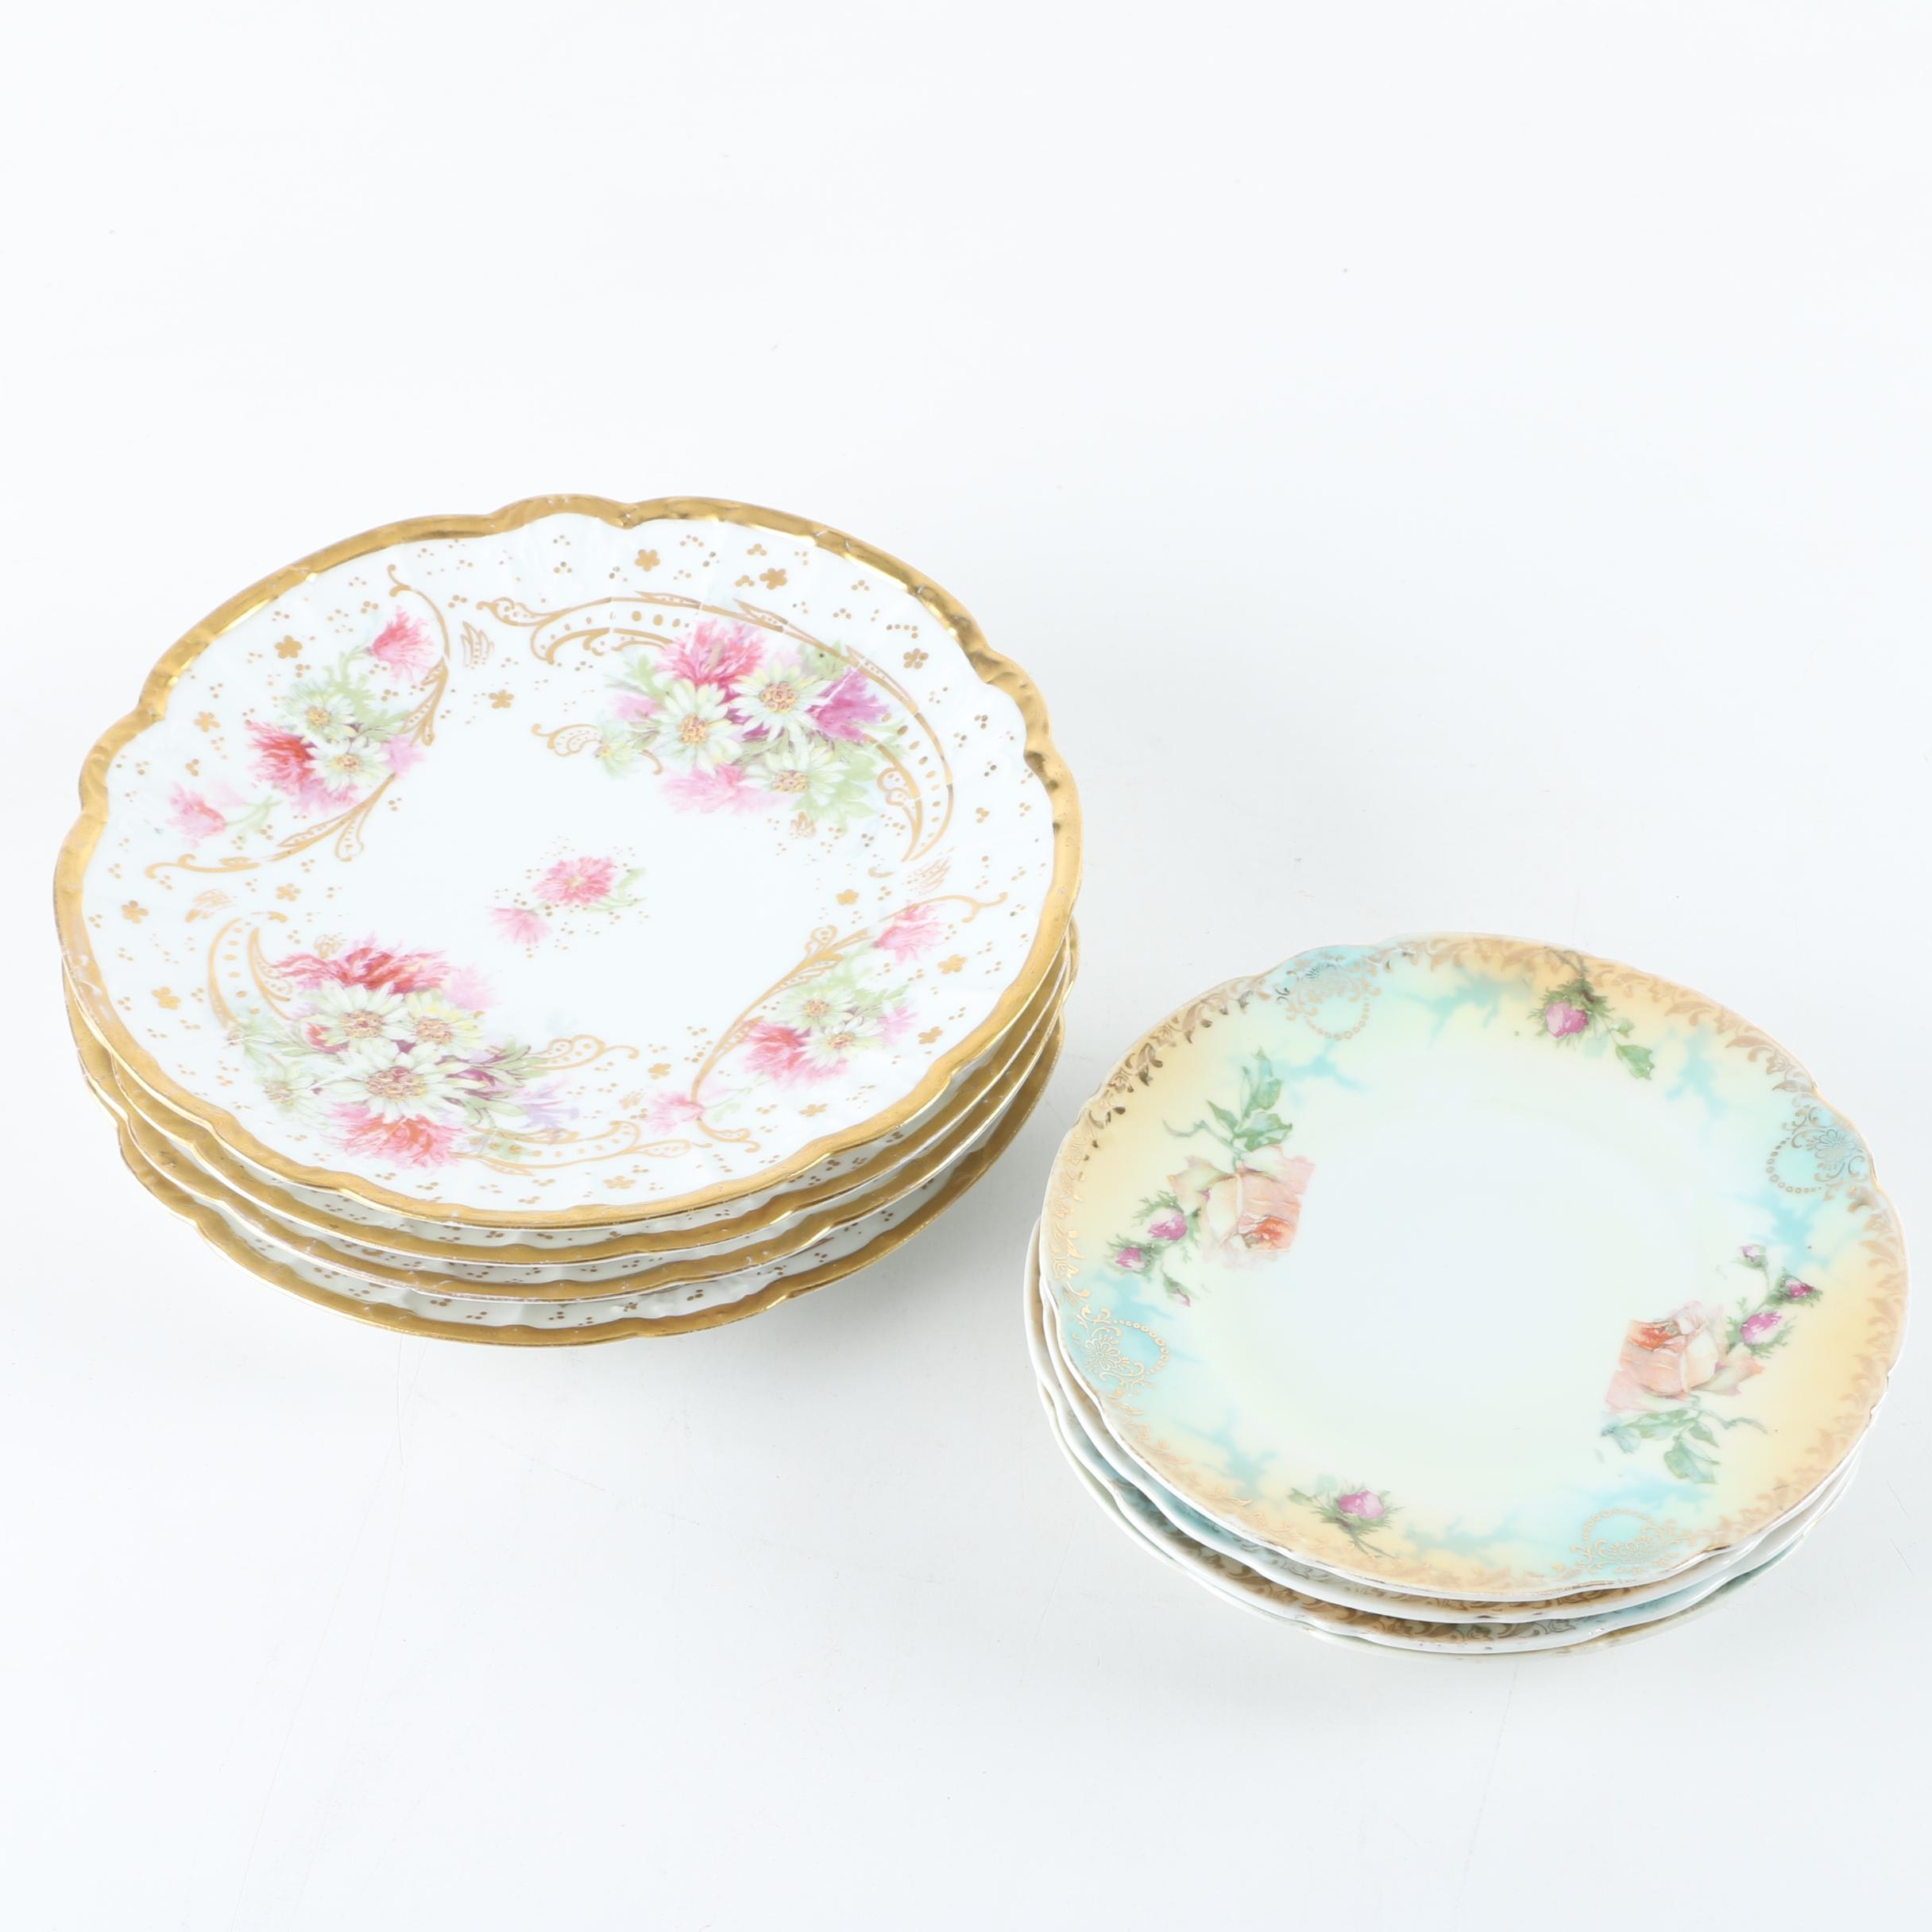 L. Straus & Sons Limoges Porcelain Plates and More